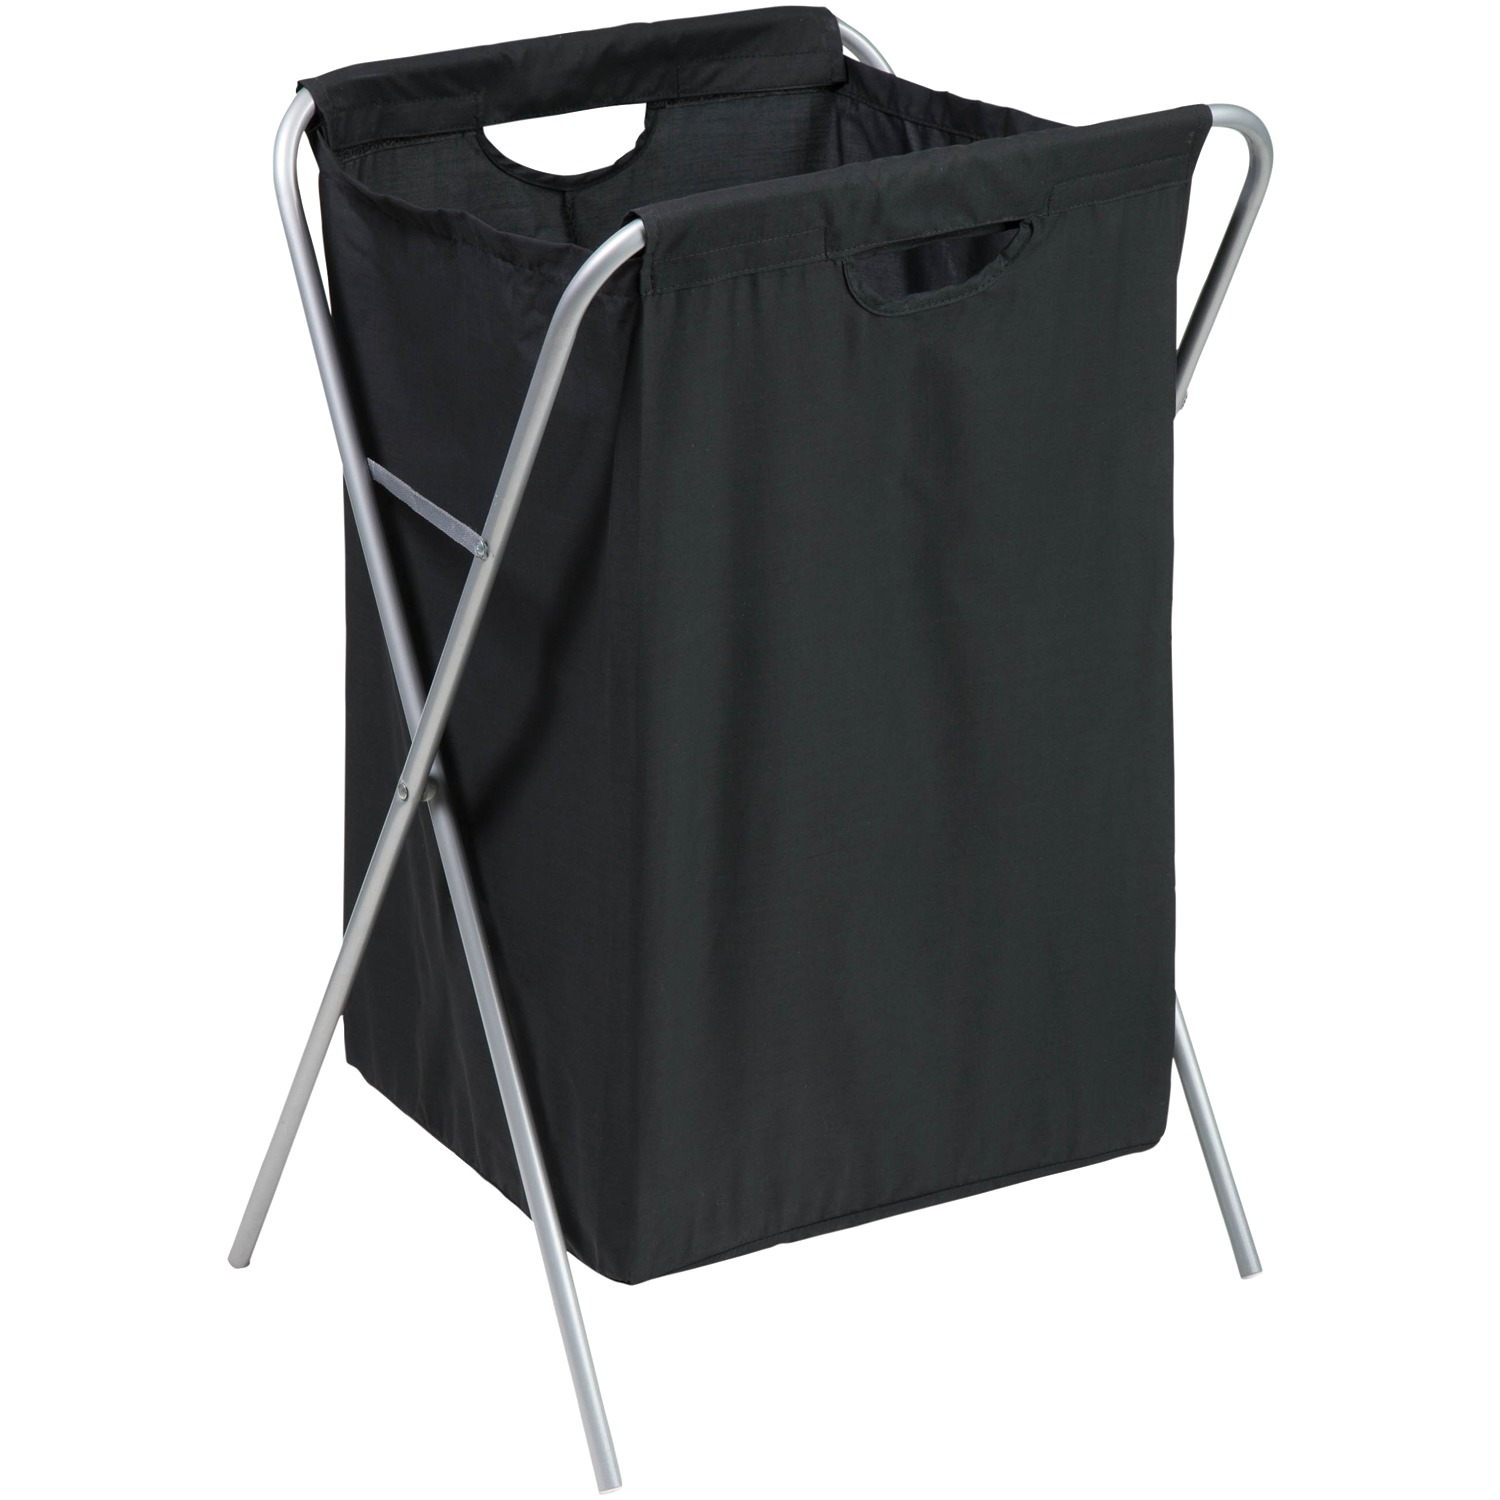 Honey Can Do Folding Nylon Hamper with Steel Frame and Washable Bag